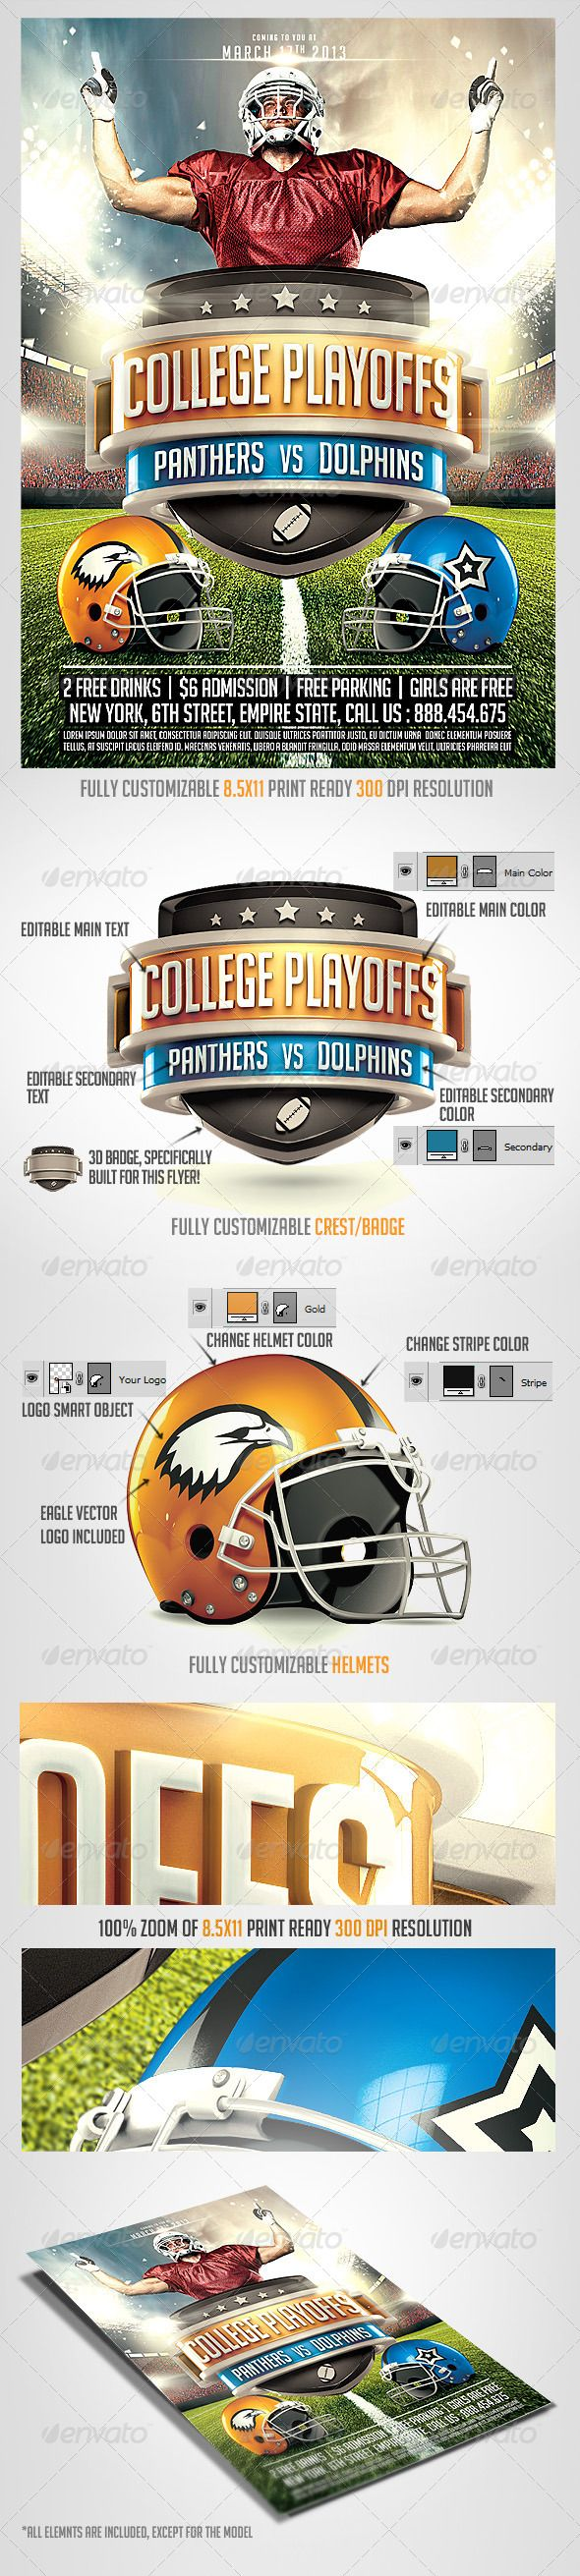 Football Superbowl 2014 Big Game Flyer Template - Sports Events